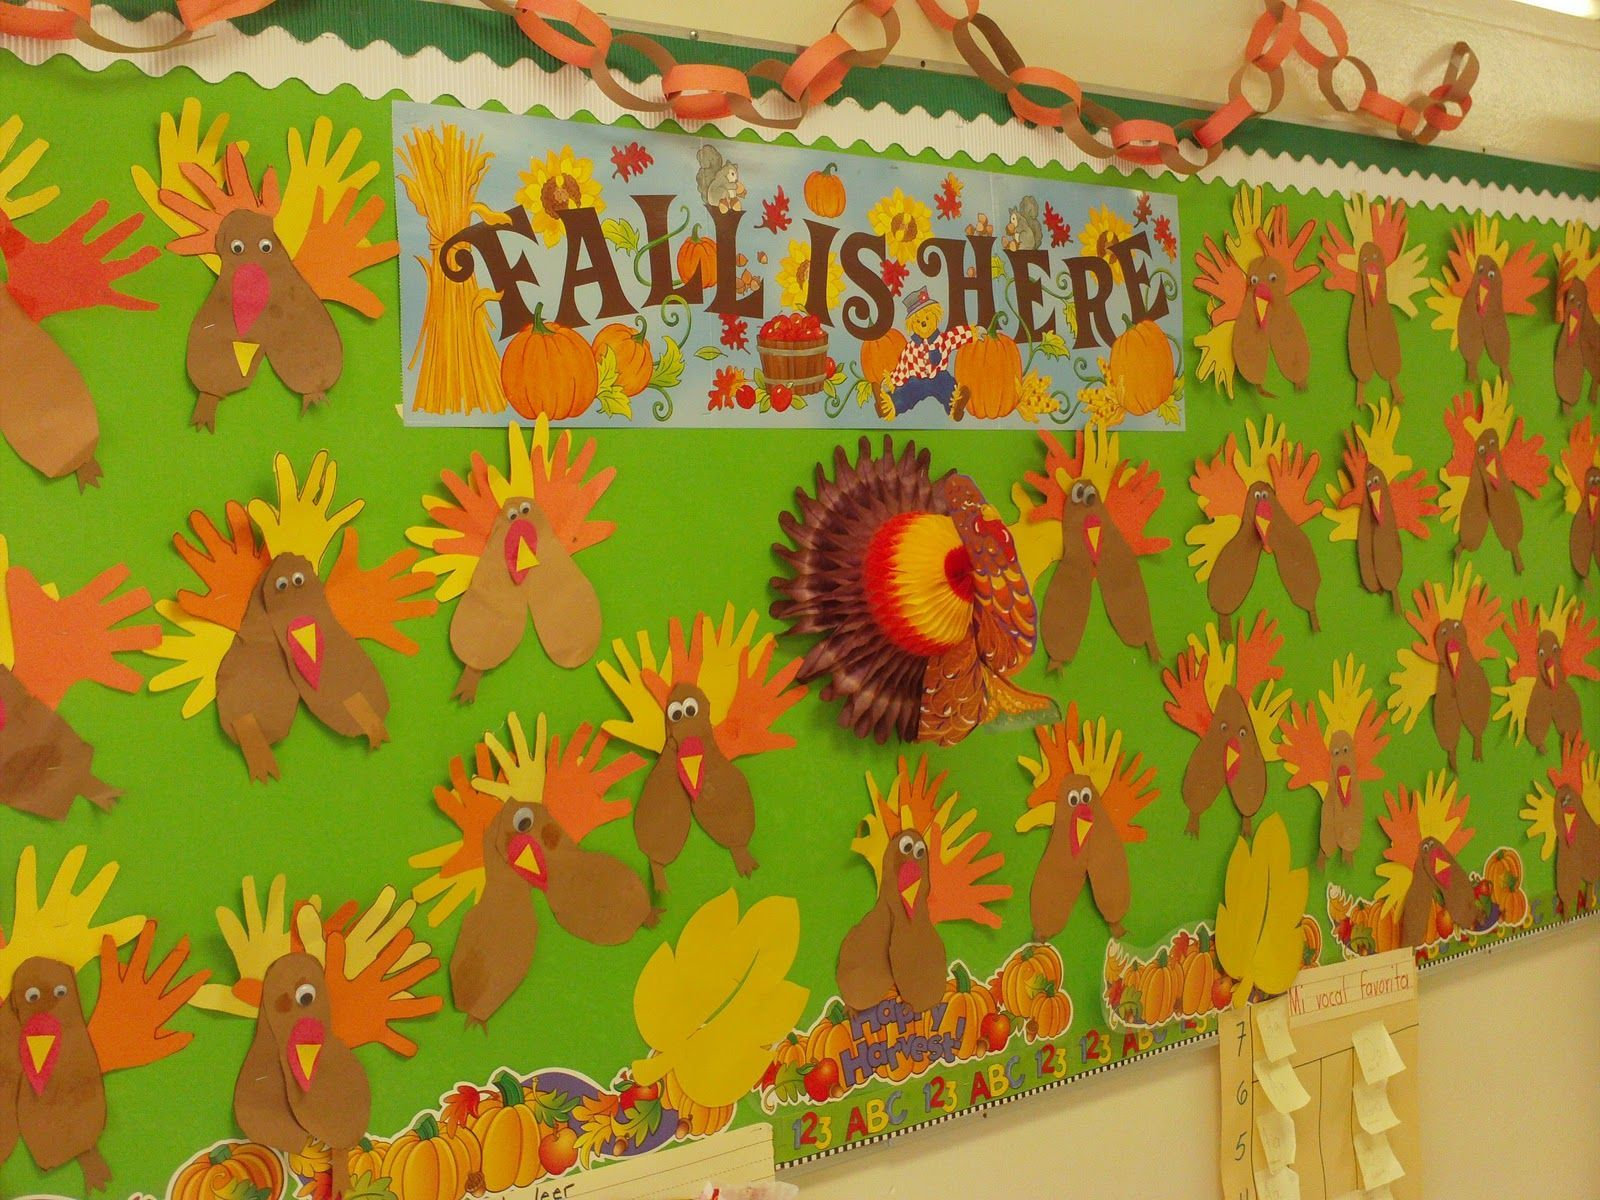 December Bulletin Boards | minichargers: Pre Kinder November Bulletin Board #novemberbulletinboards December Bulletin Boards | minichargers: Pre Kinder November Bulletin Board #novemberbulletinboards